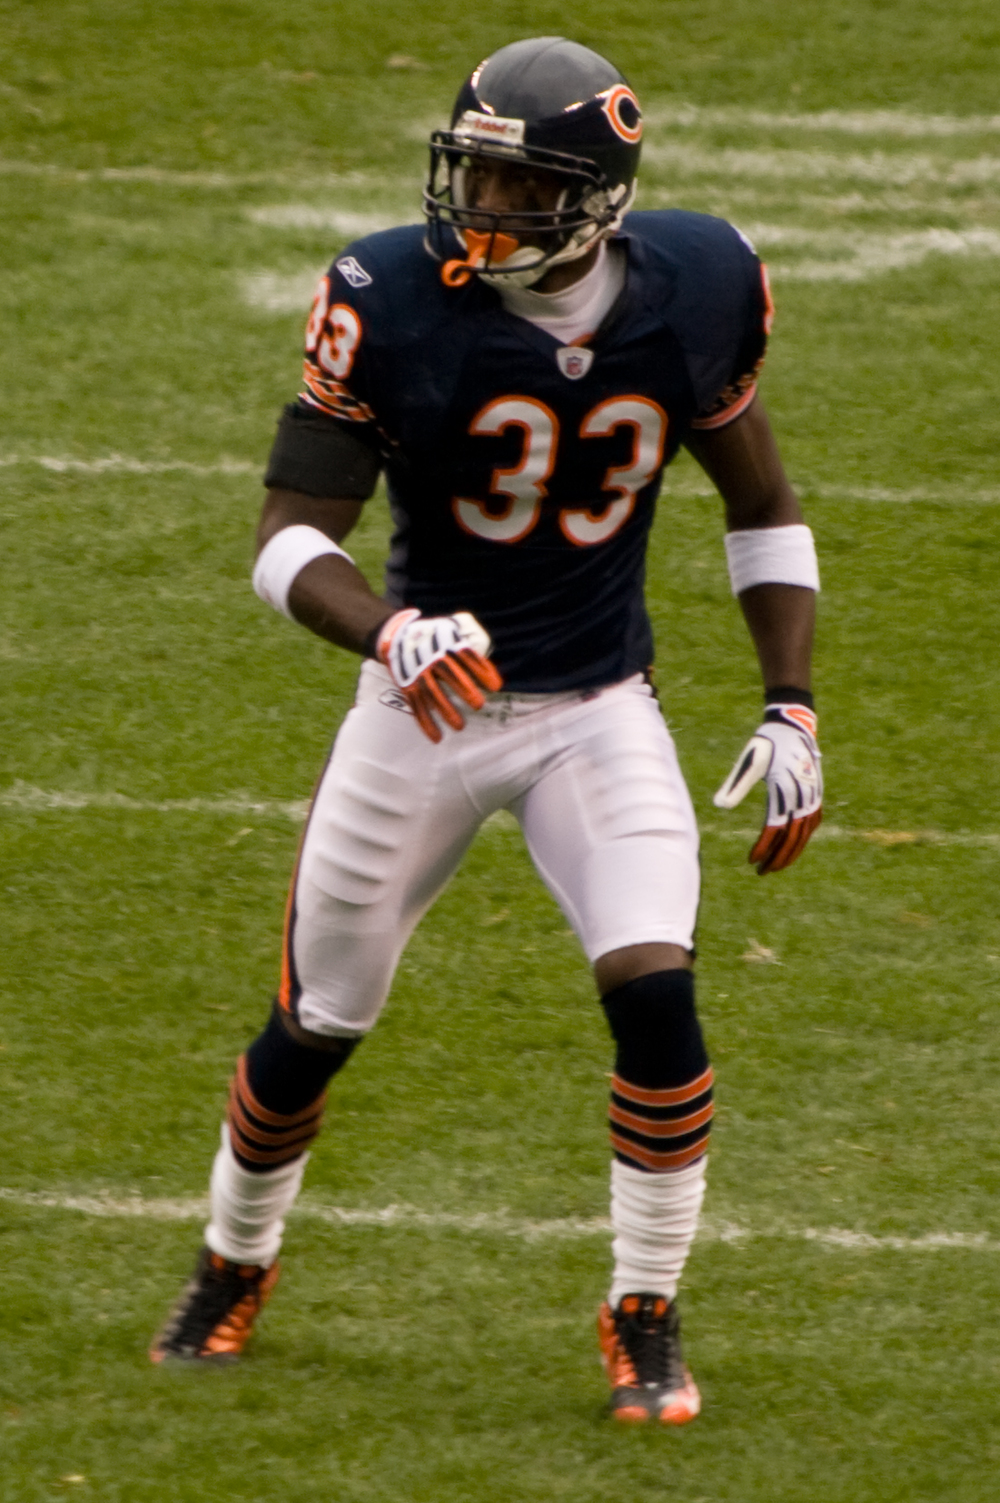 Charles Tillman, winner of this year's Walter Payton Man of the Year Award.